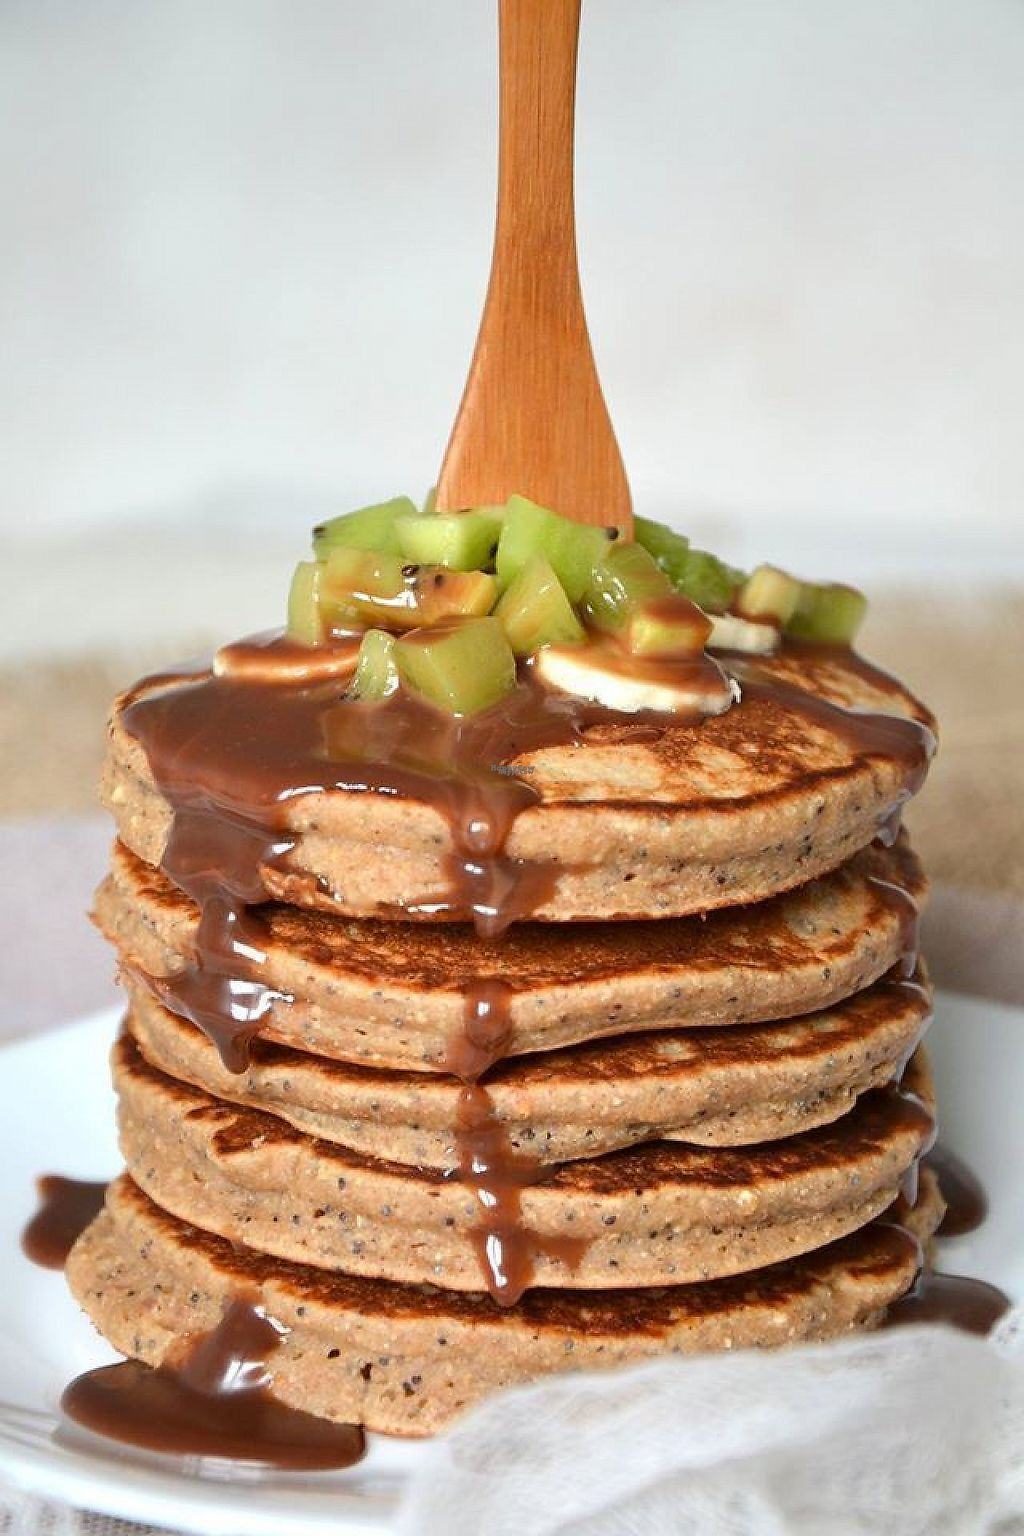 "Photo of La Vie Claire  by <a href=""/members/profile/community"">community</a> <br/>vegan pancakes  <br/> February 4, 2017  - <a href='/contact/abuse/image/72029/221882'>Report</a>"